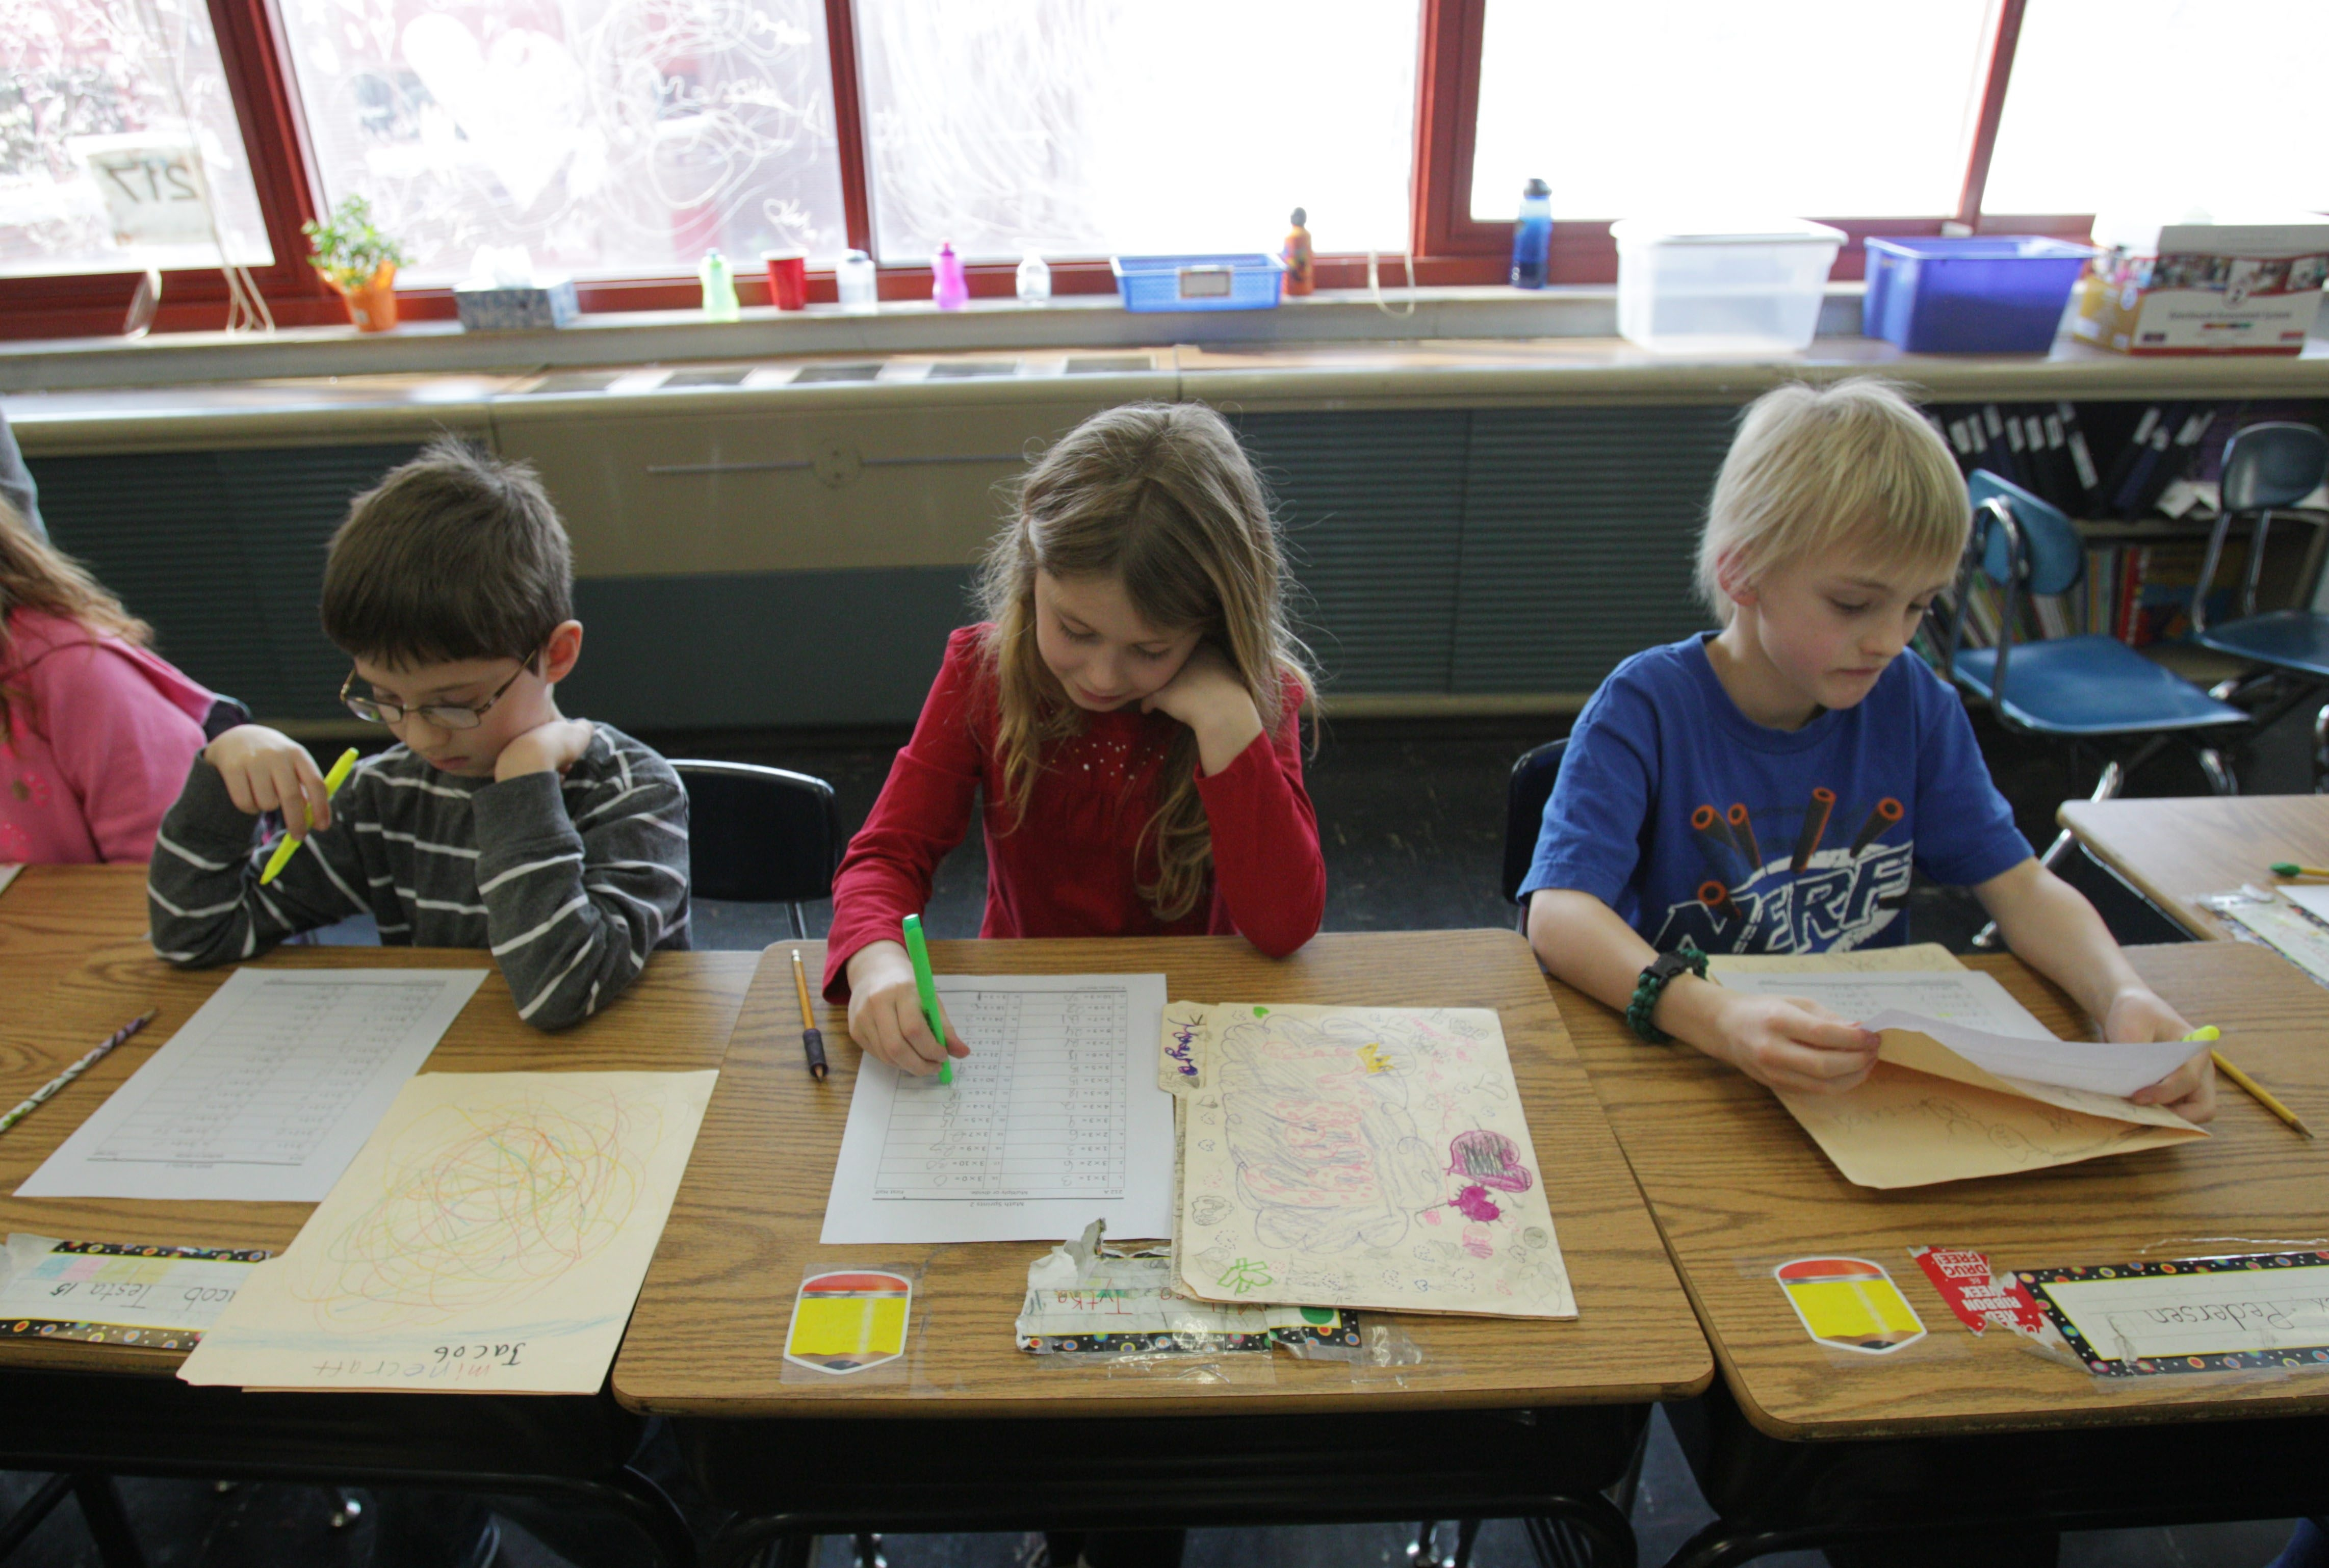 At Smallwood Elementary, Joanne Carroll's third- grade class does math sprints. They complete as many multiplication and division problems as they can in one minute. They all correct together afterward.  From left are Jacob Testa, Meliisa Tyka and Alex Pederson.